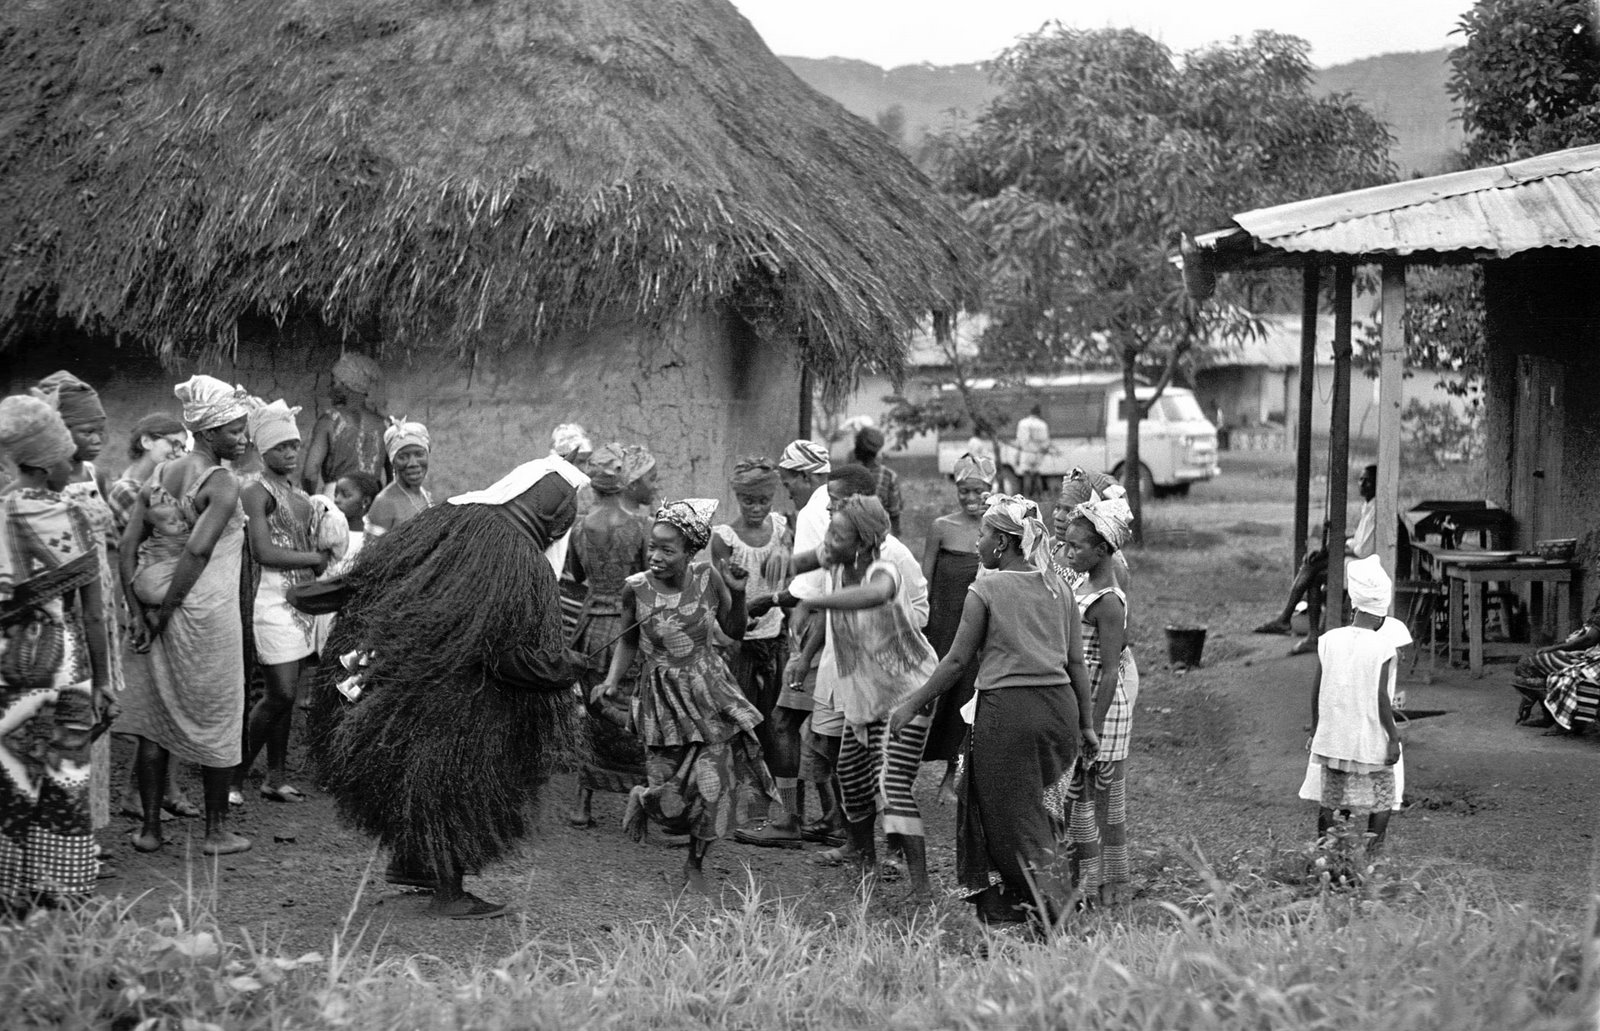 a dance with the Bundu Devil at Tokpombu (Nongowa)